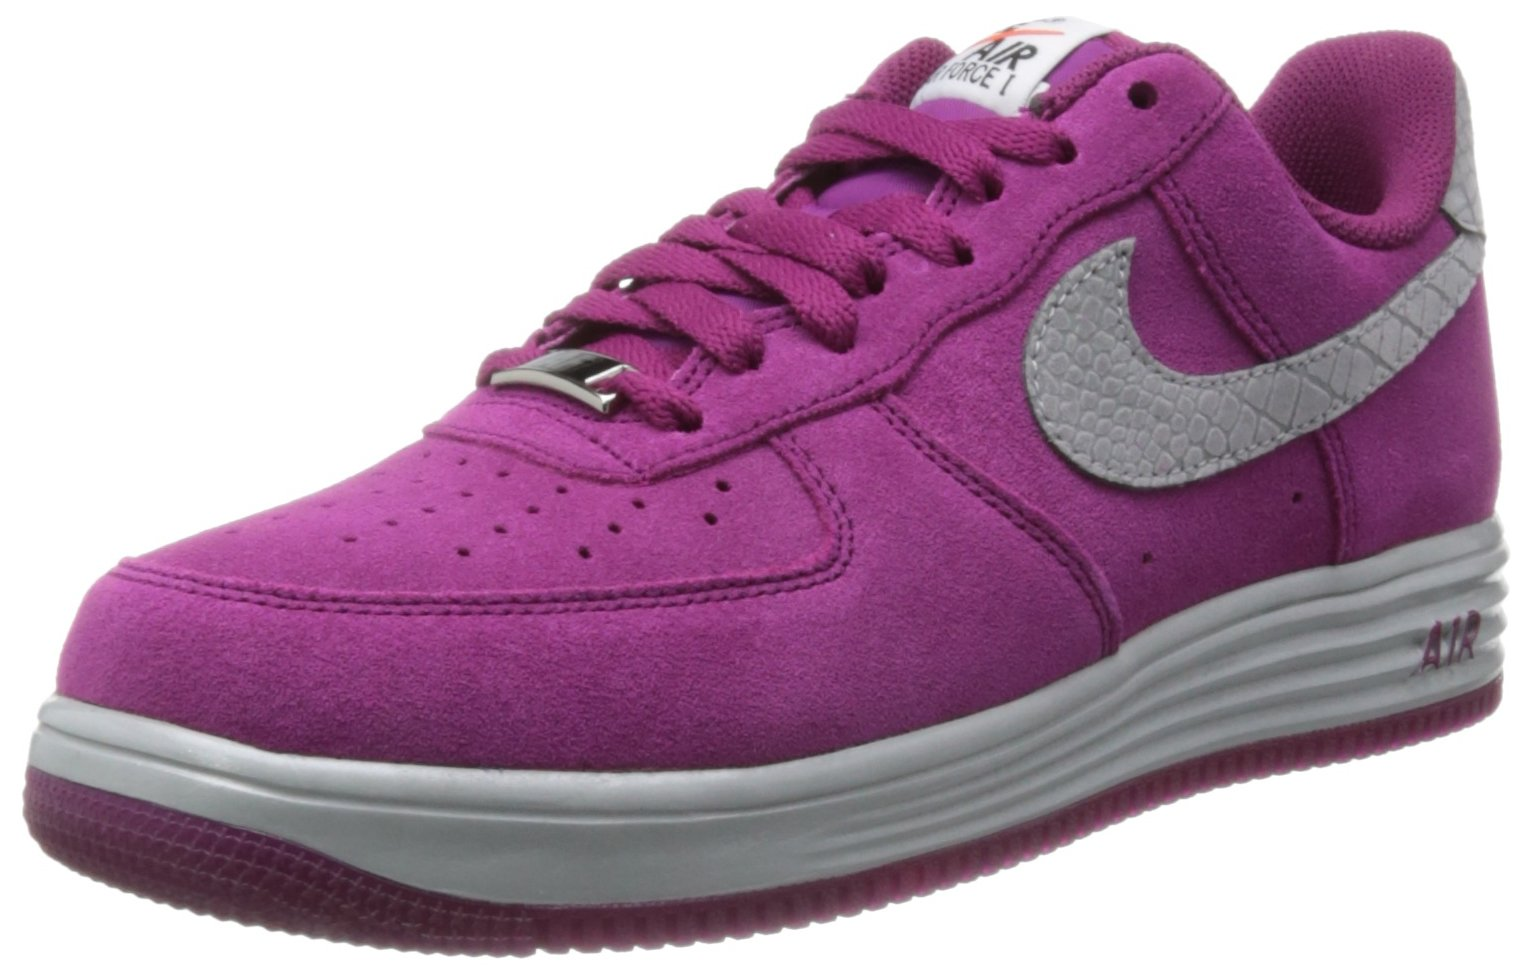 Nike Lunar Force 1 Air Force Sneakers Raspberry Red (8.5)